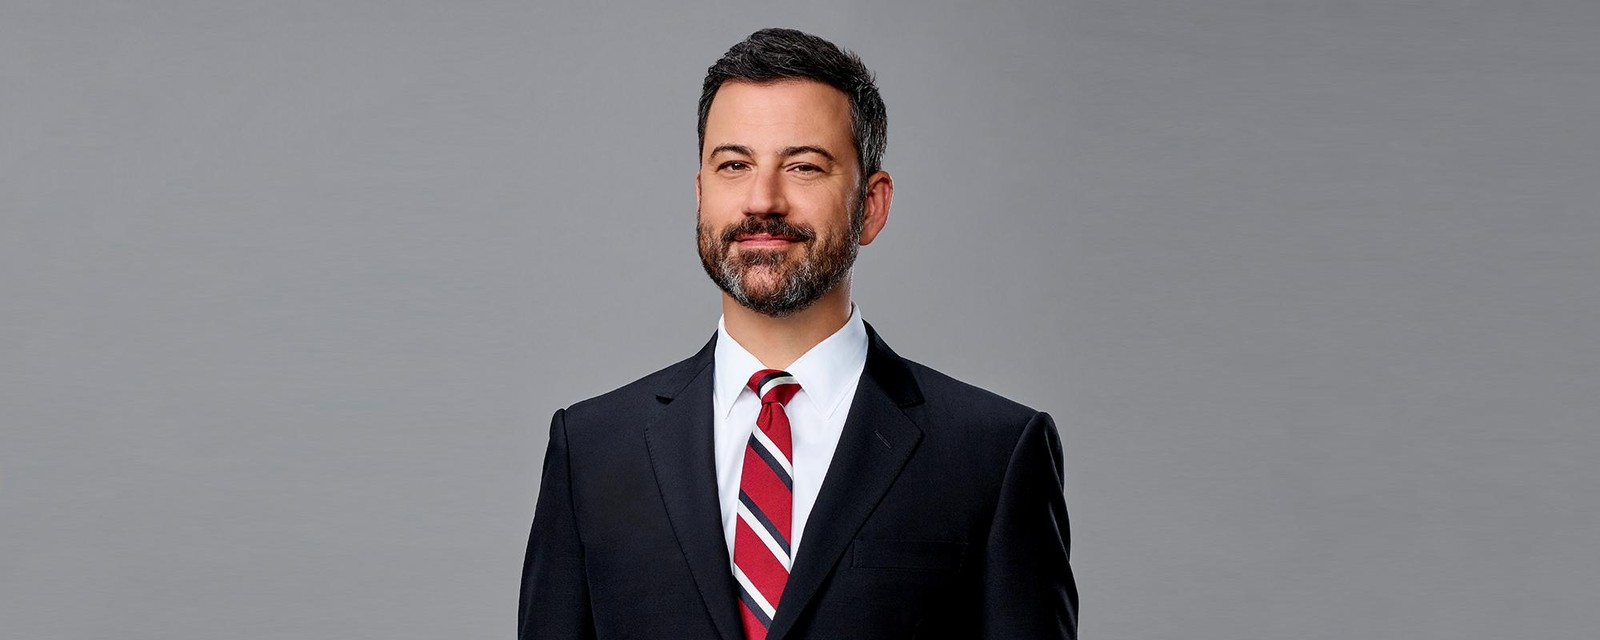 JIMMY KIMMEL PARTNERS WITH CAESARS ENTERTAINMENT TO OPEN COMEDY CLUB AT THE LINQ PROMENADE - by Caesars Entertainment